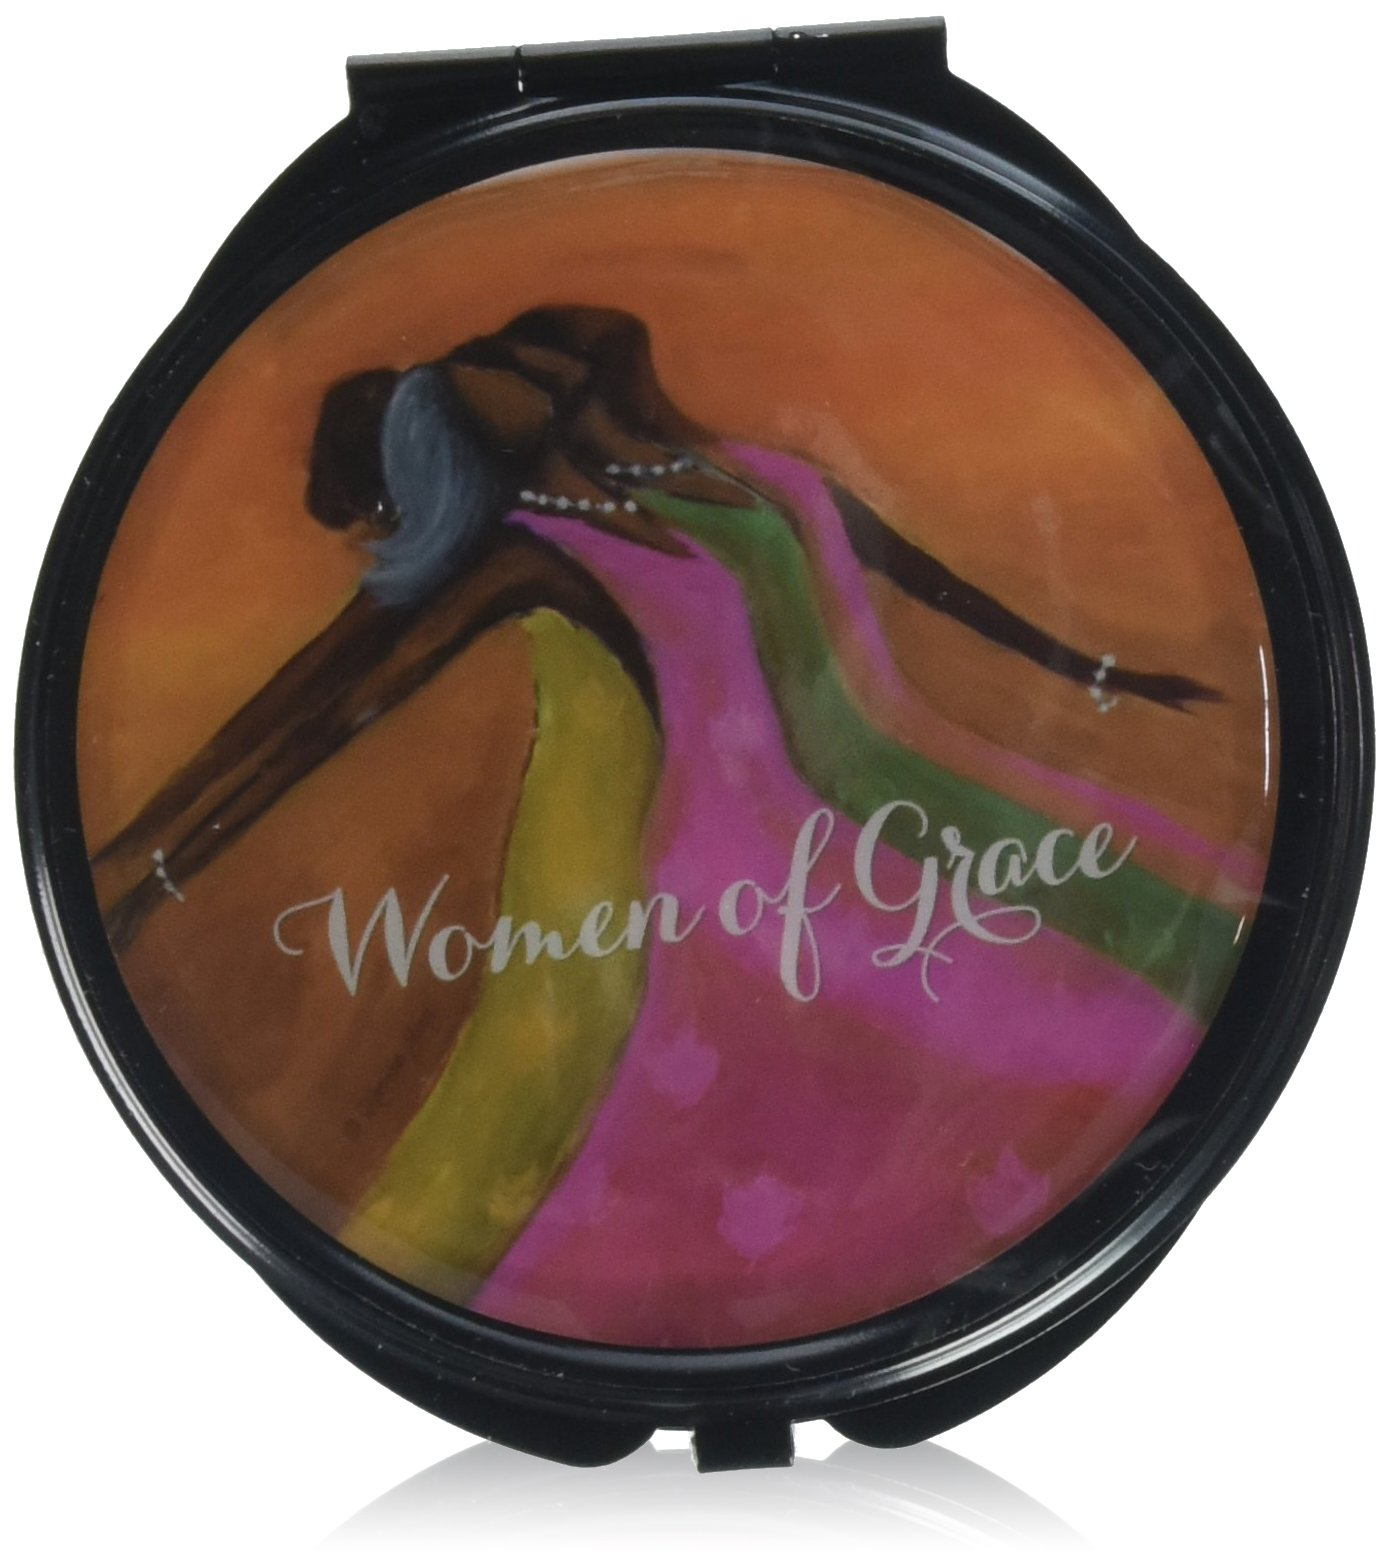 Shades of Color Pocket Mirror Case: Women of Grace, 0.15 lbs. (PMC102)